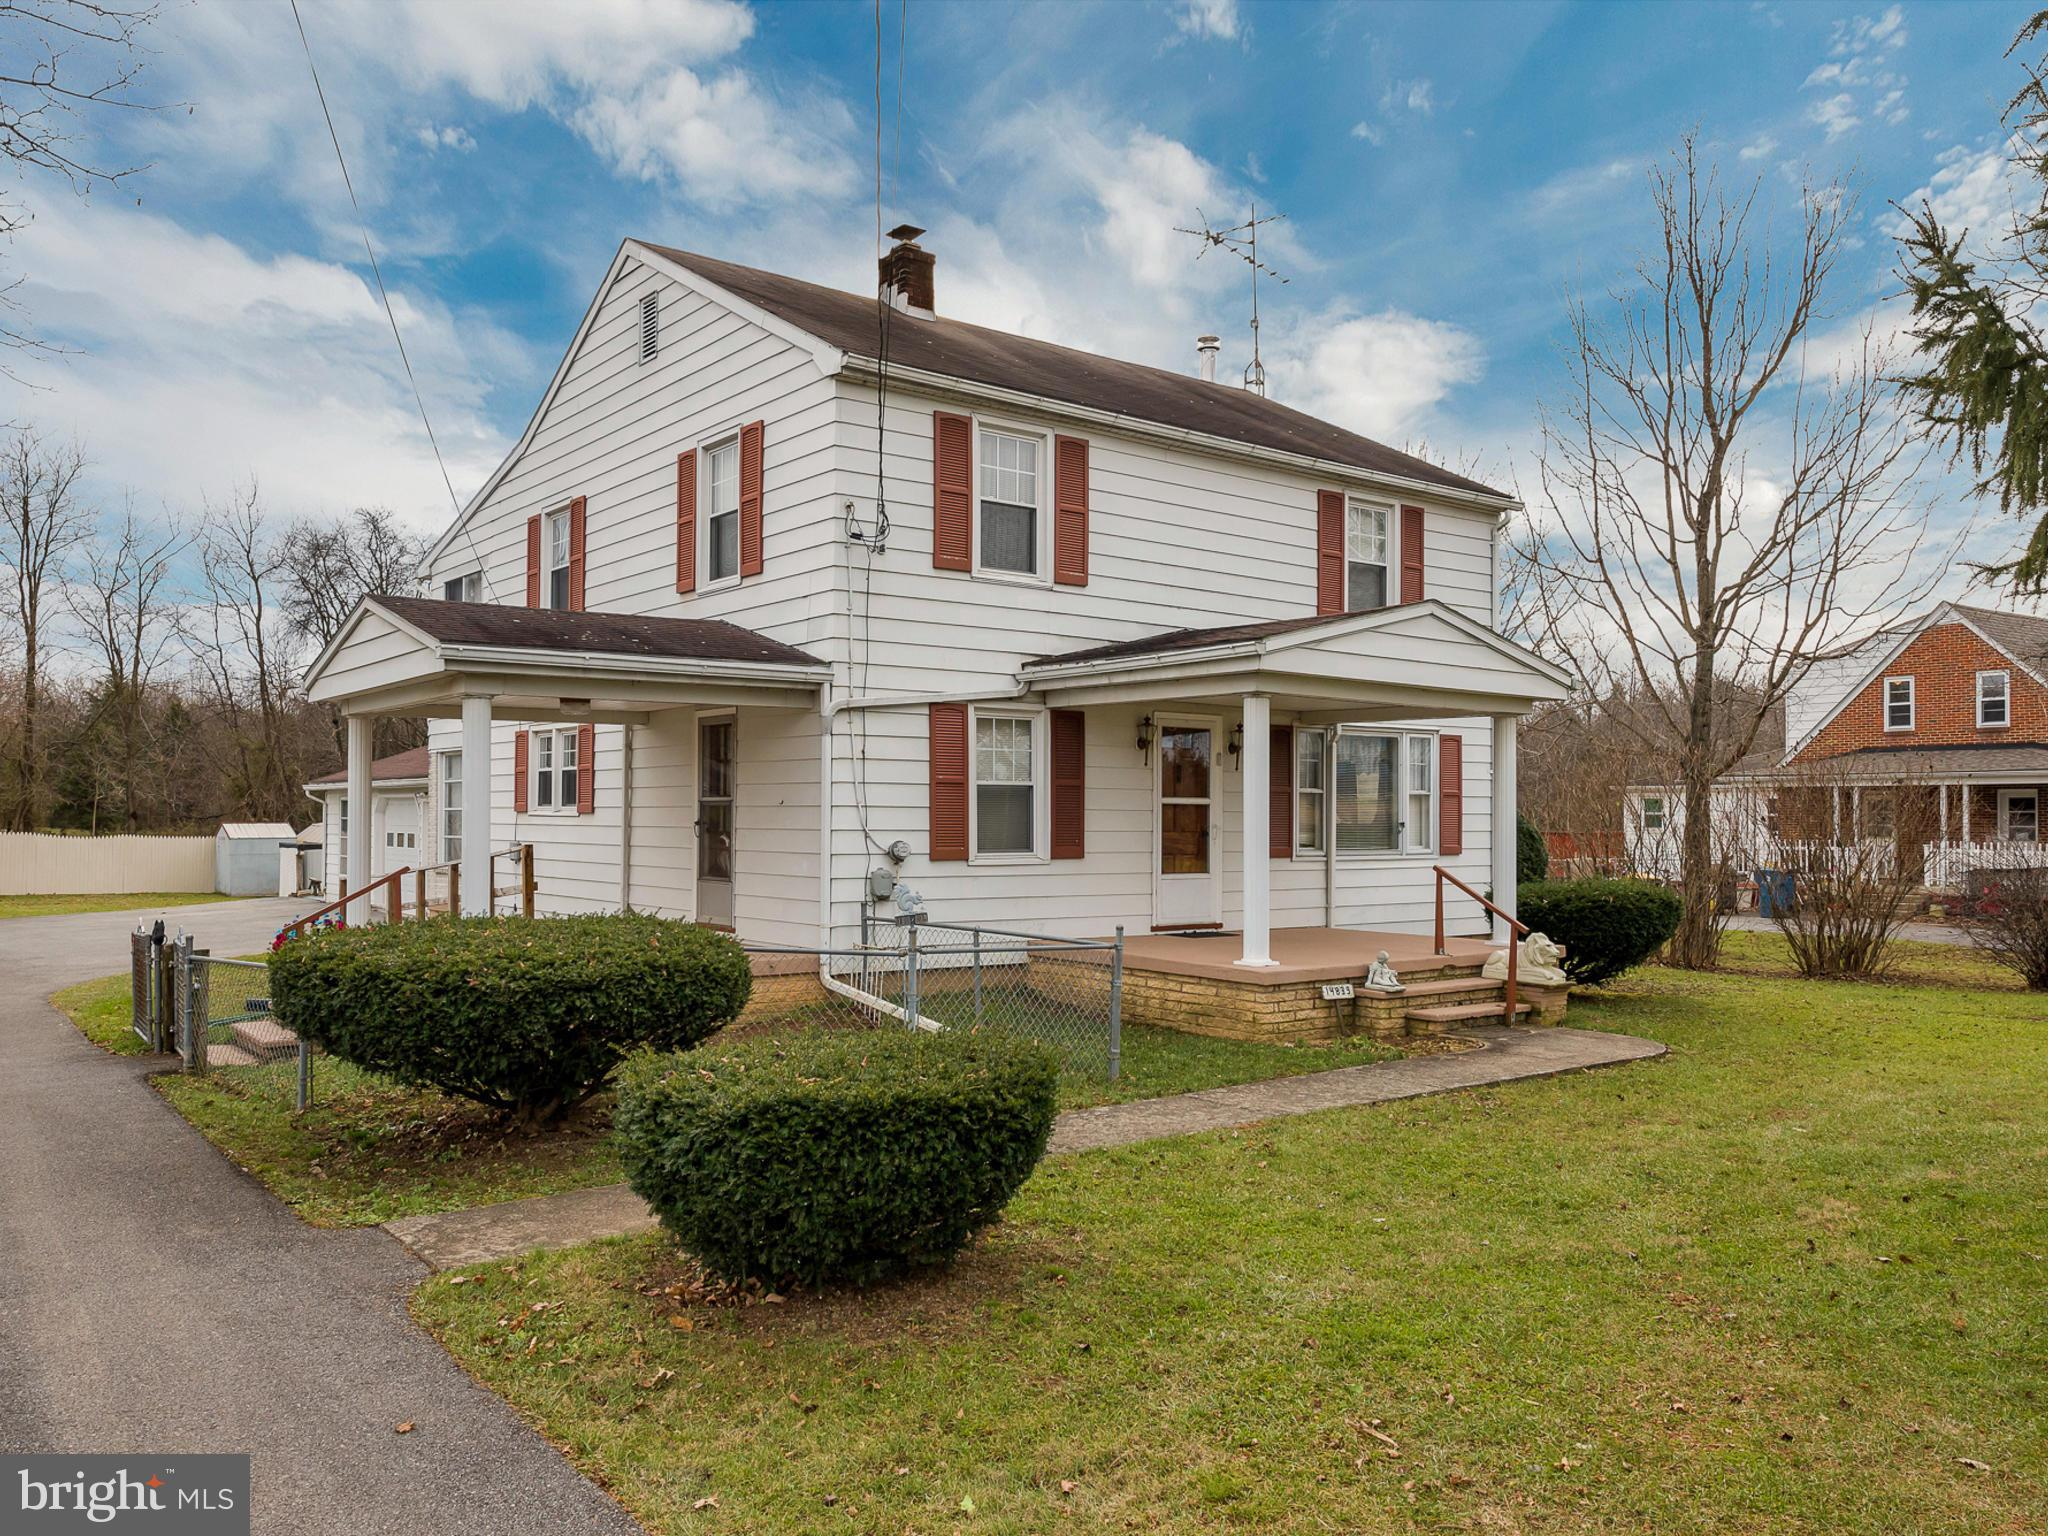 14839 NATIONAL PIKE, CLEAR SPRING, MD 21722